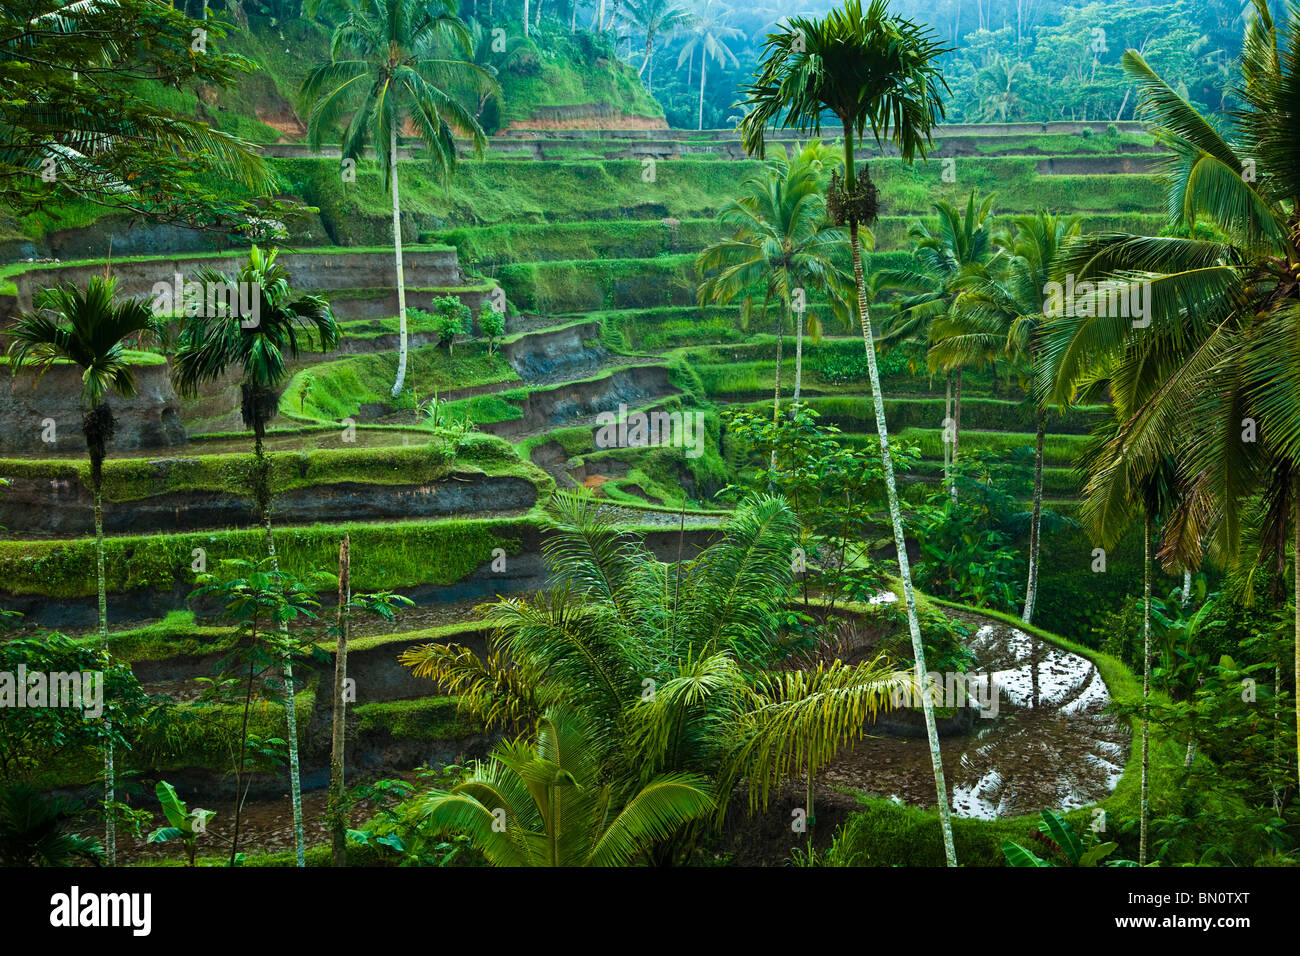 Tegelelang it is a popular excursion for visitors to Ubud to go up and admire the many rice terraces. - Stock Image